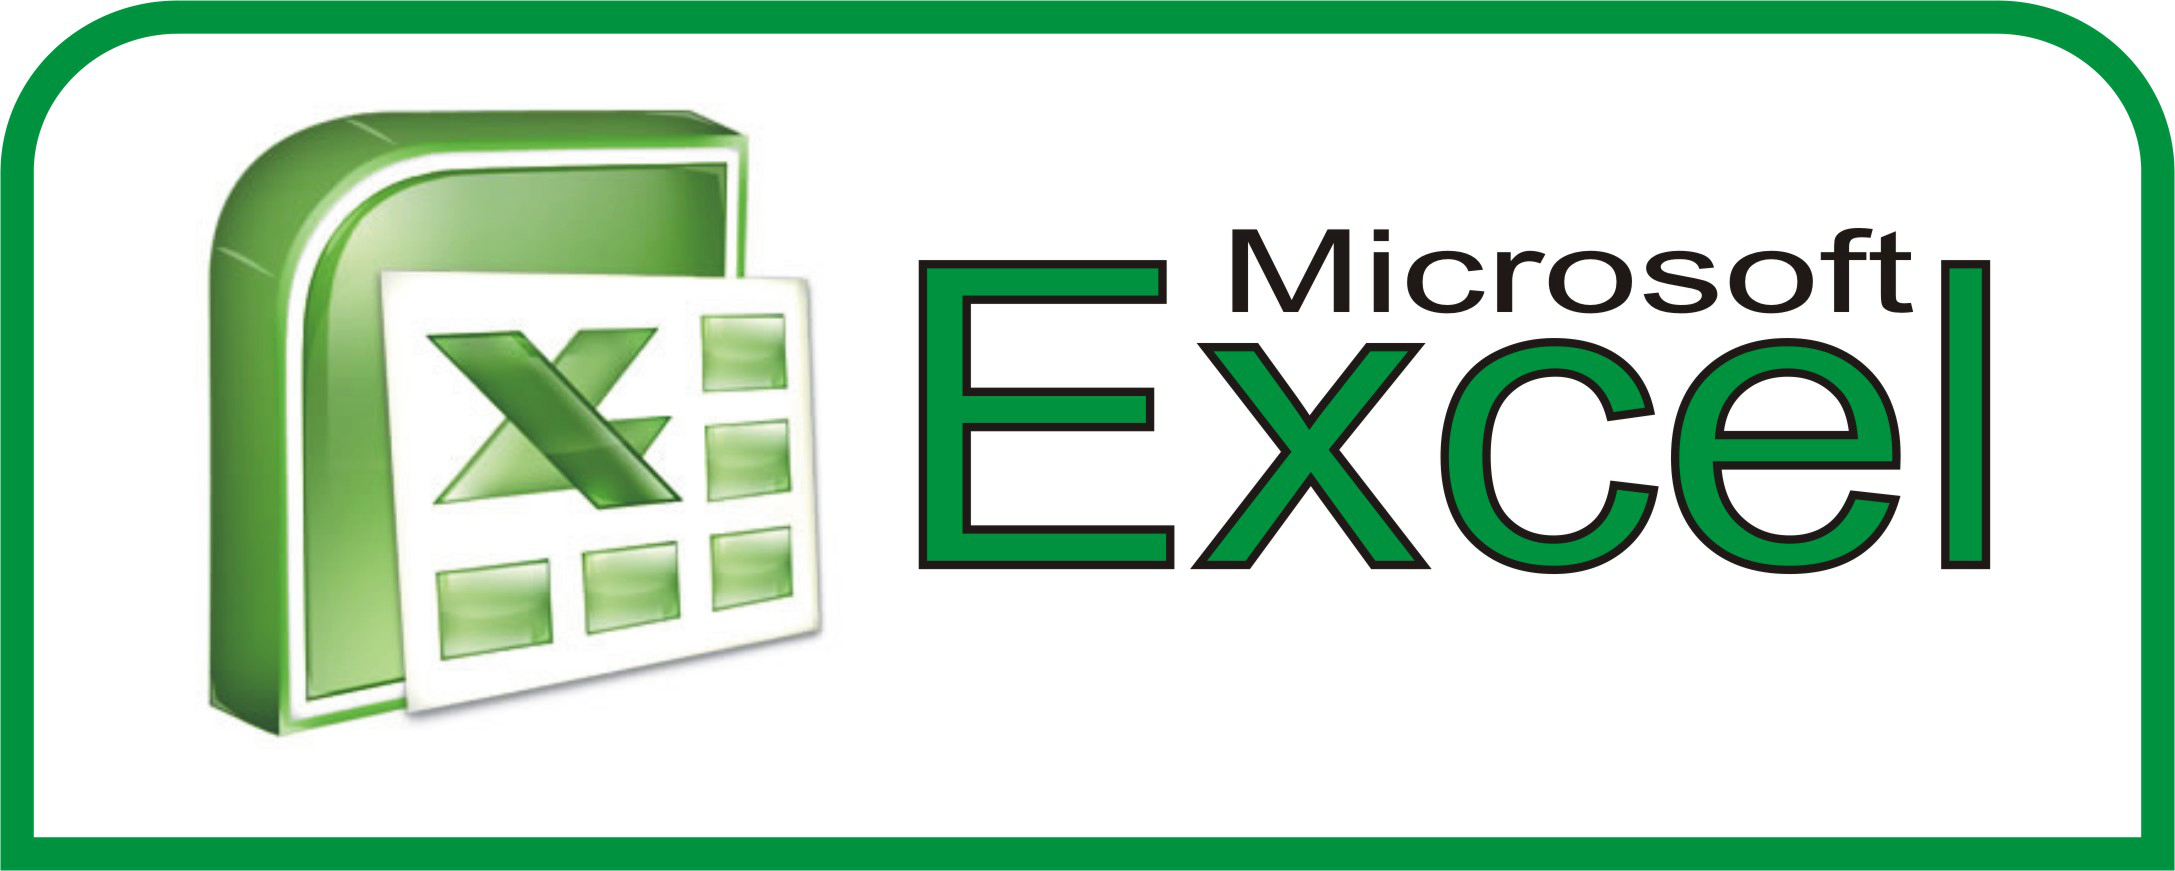 Ediblewildsus  Unique  Excel Shortcuts You Probably Didnt Know About  Techdissected With Licious Excel Chart Data Besides Or Command In Excel Furthermore Recipe Cost Calculator Excel With Adorable Microsoft Excel Tutorial  Also Excel Breinigsville Pa In Addition Excel For Tablet And Excel Sudoku As Well As Microsoft Excel Not Enough System Resources To Display Completely Additionally Excel Test For Job Interview From Techdissectedcom With Ediblewildsus  Licious  Excel Shortcuts You Probably Didnt Know About  Techdissected With Adorable Excel Chart Data Besides Or Command In Excel Furthermore Recipe Cost Calculator Excel And Unique Microsoft Excel Tutorial  Also Excel Breinigsville Pa In Addition Excel For Tablet From Techdissectedcom